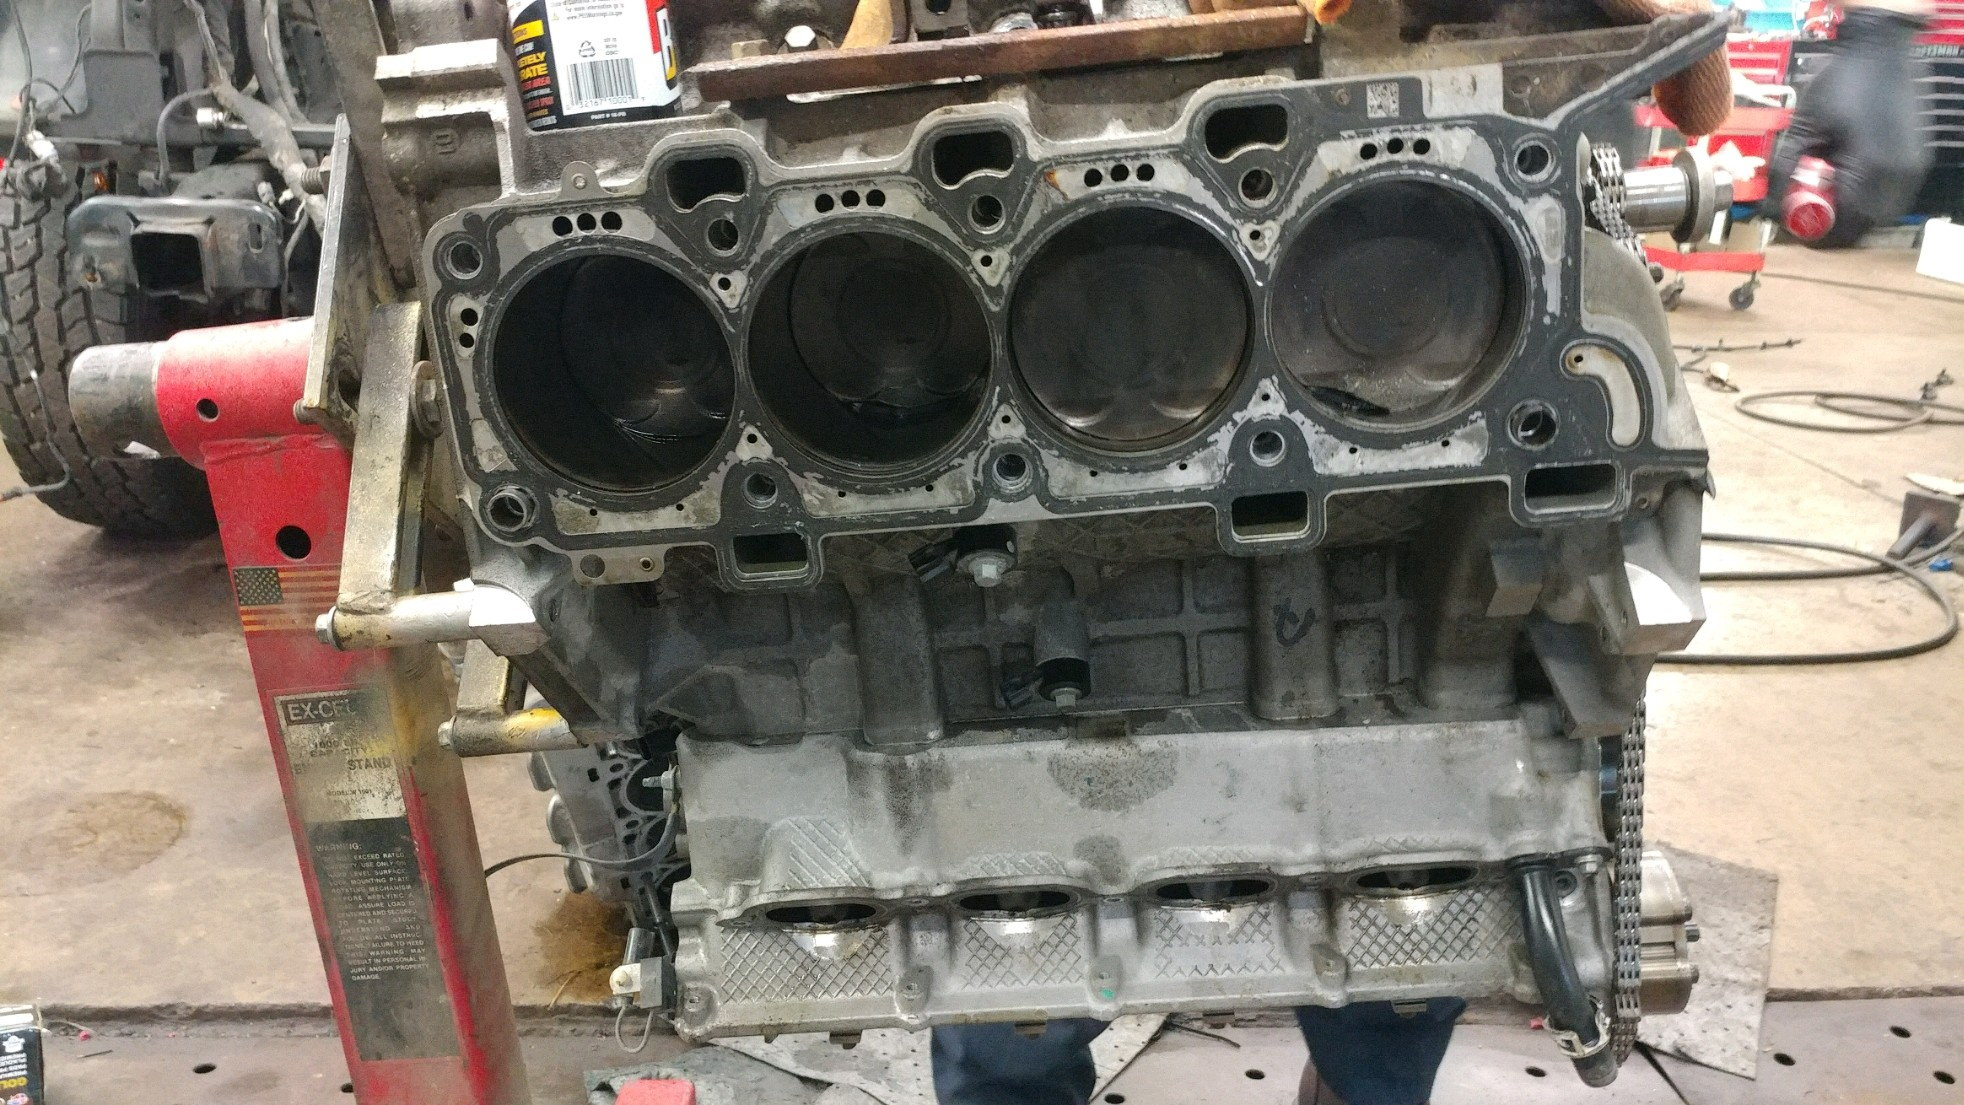 Long term reliability for 5 0 - Ford F150 Forum - Community